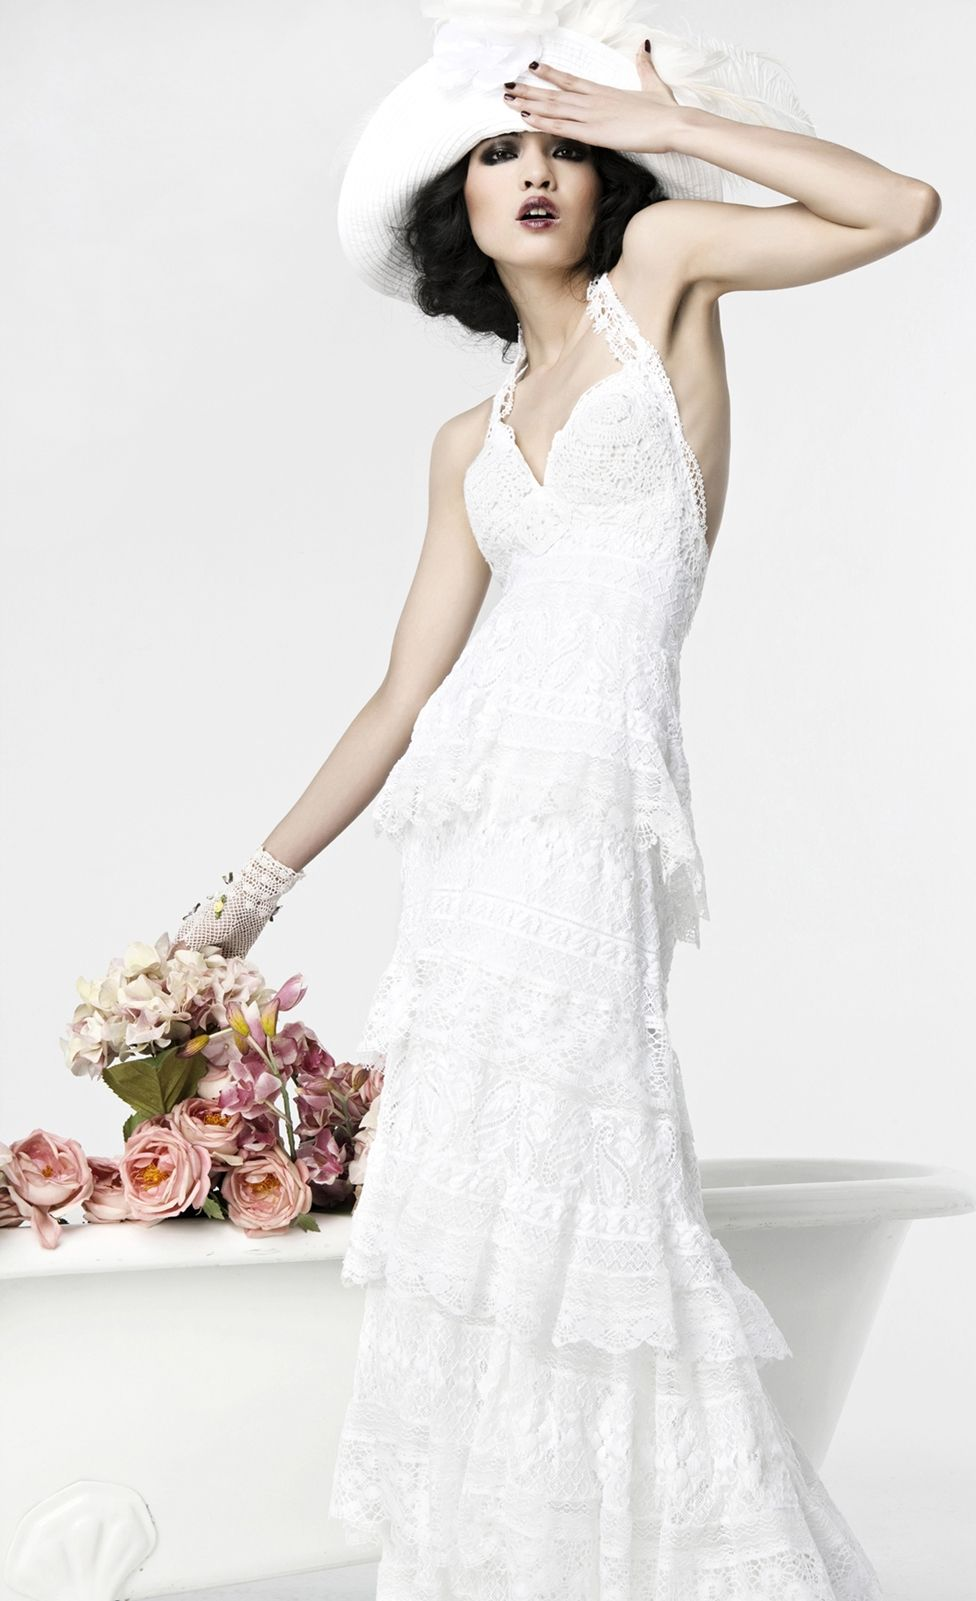 Pin by Jacque Reid on White Wishes | Pinterest | Ana rosa, Wedding ...